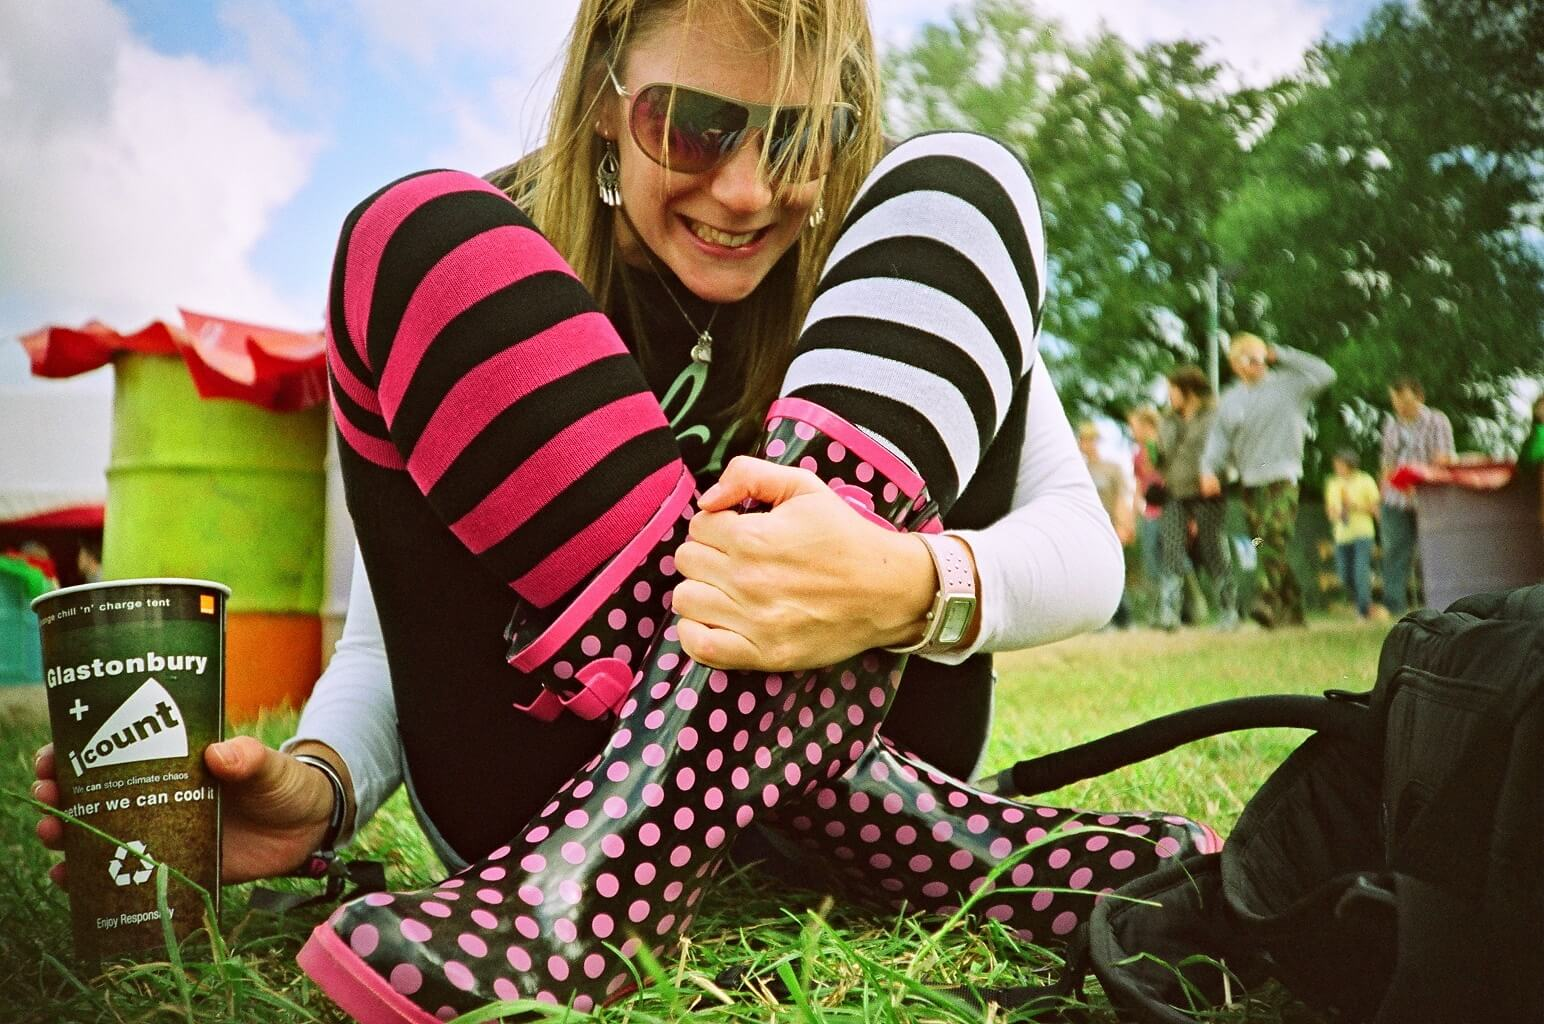 Glastonbury footwear